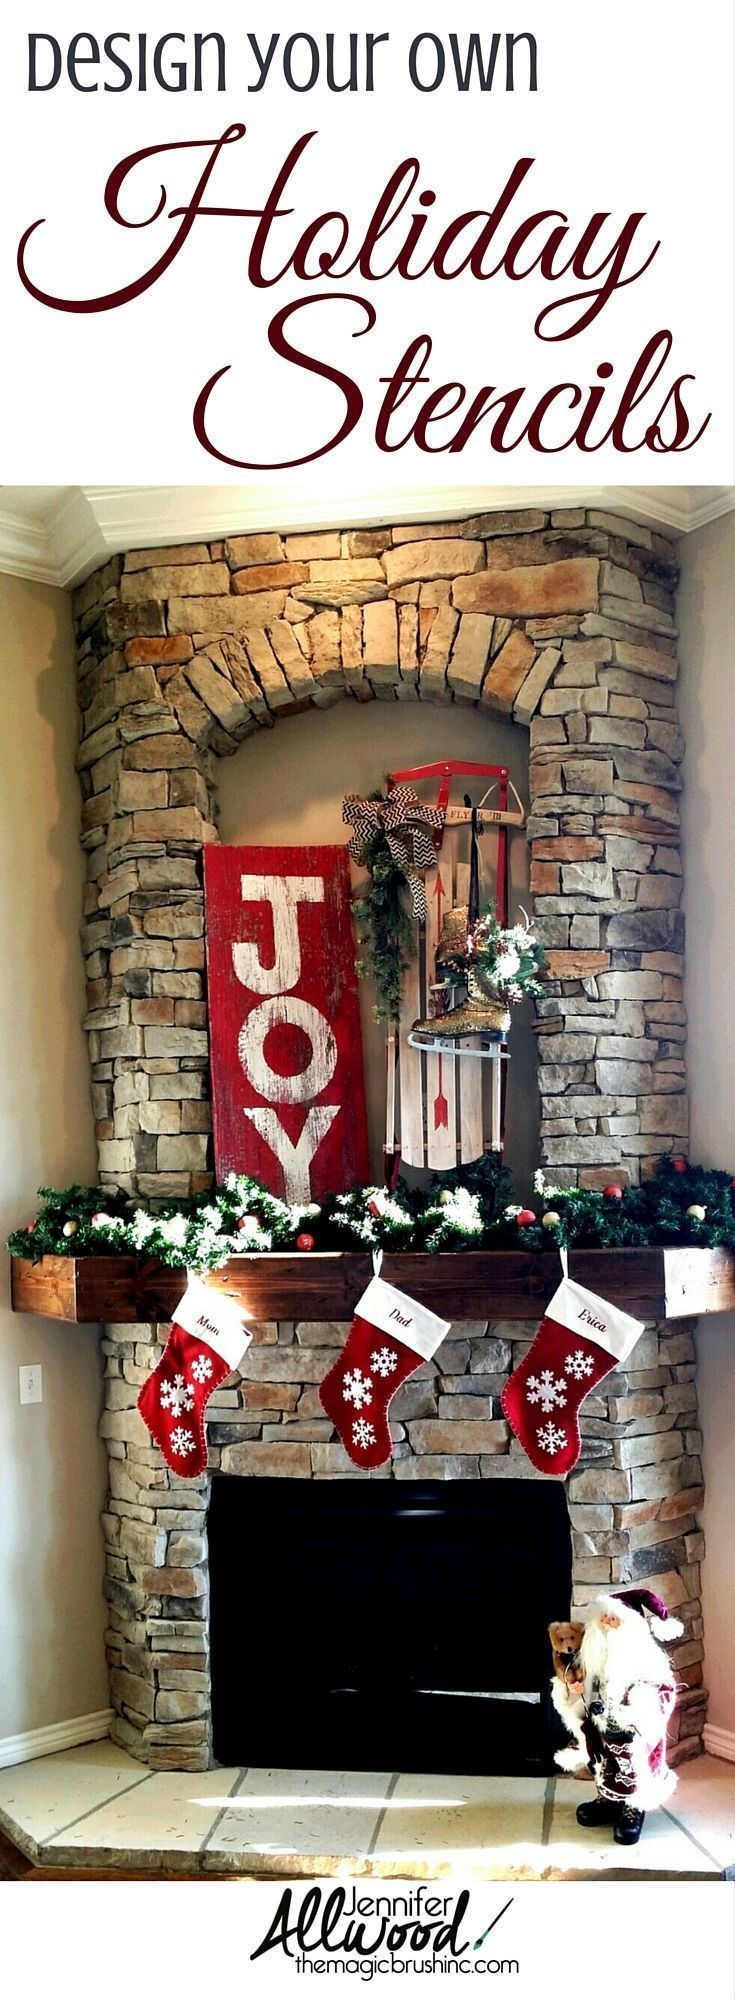 Info's : Design your own Christmas and holiday stencils on a salvaged barnwood. Makes cute holiday, porch and home decor! Painting tips from theMagicBrushinc.com